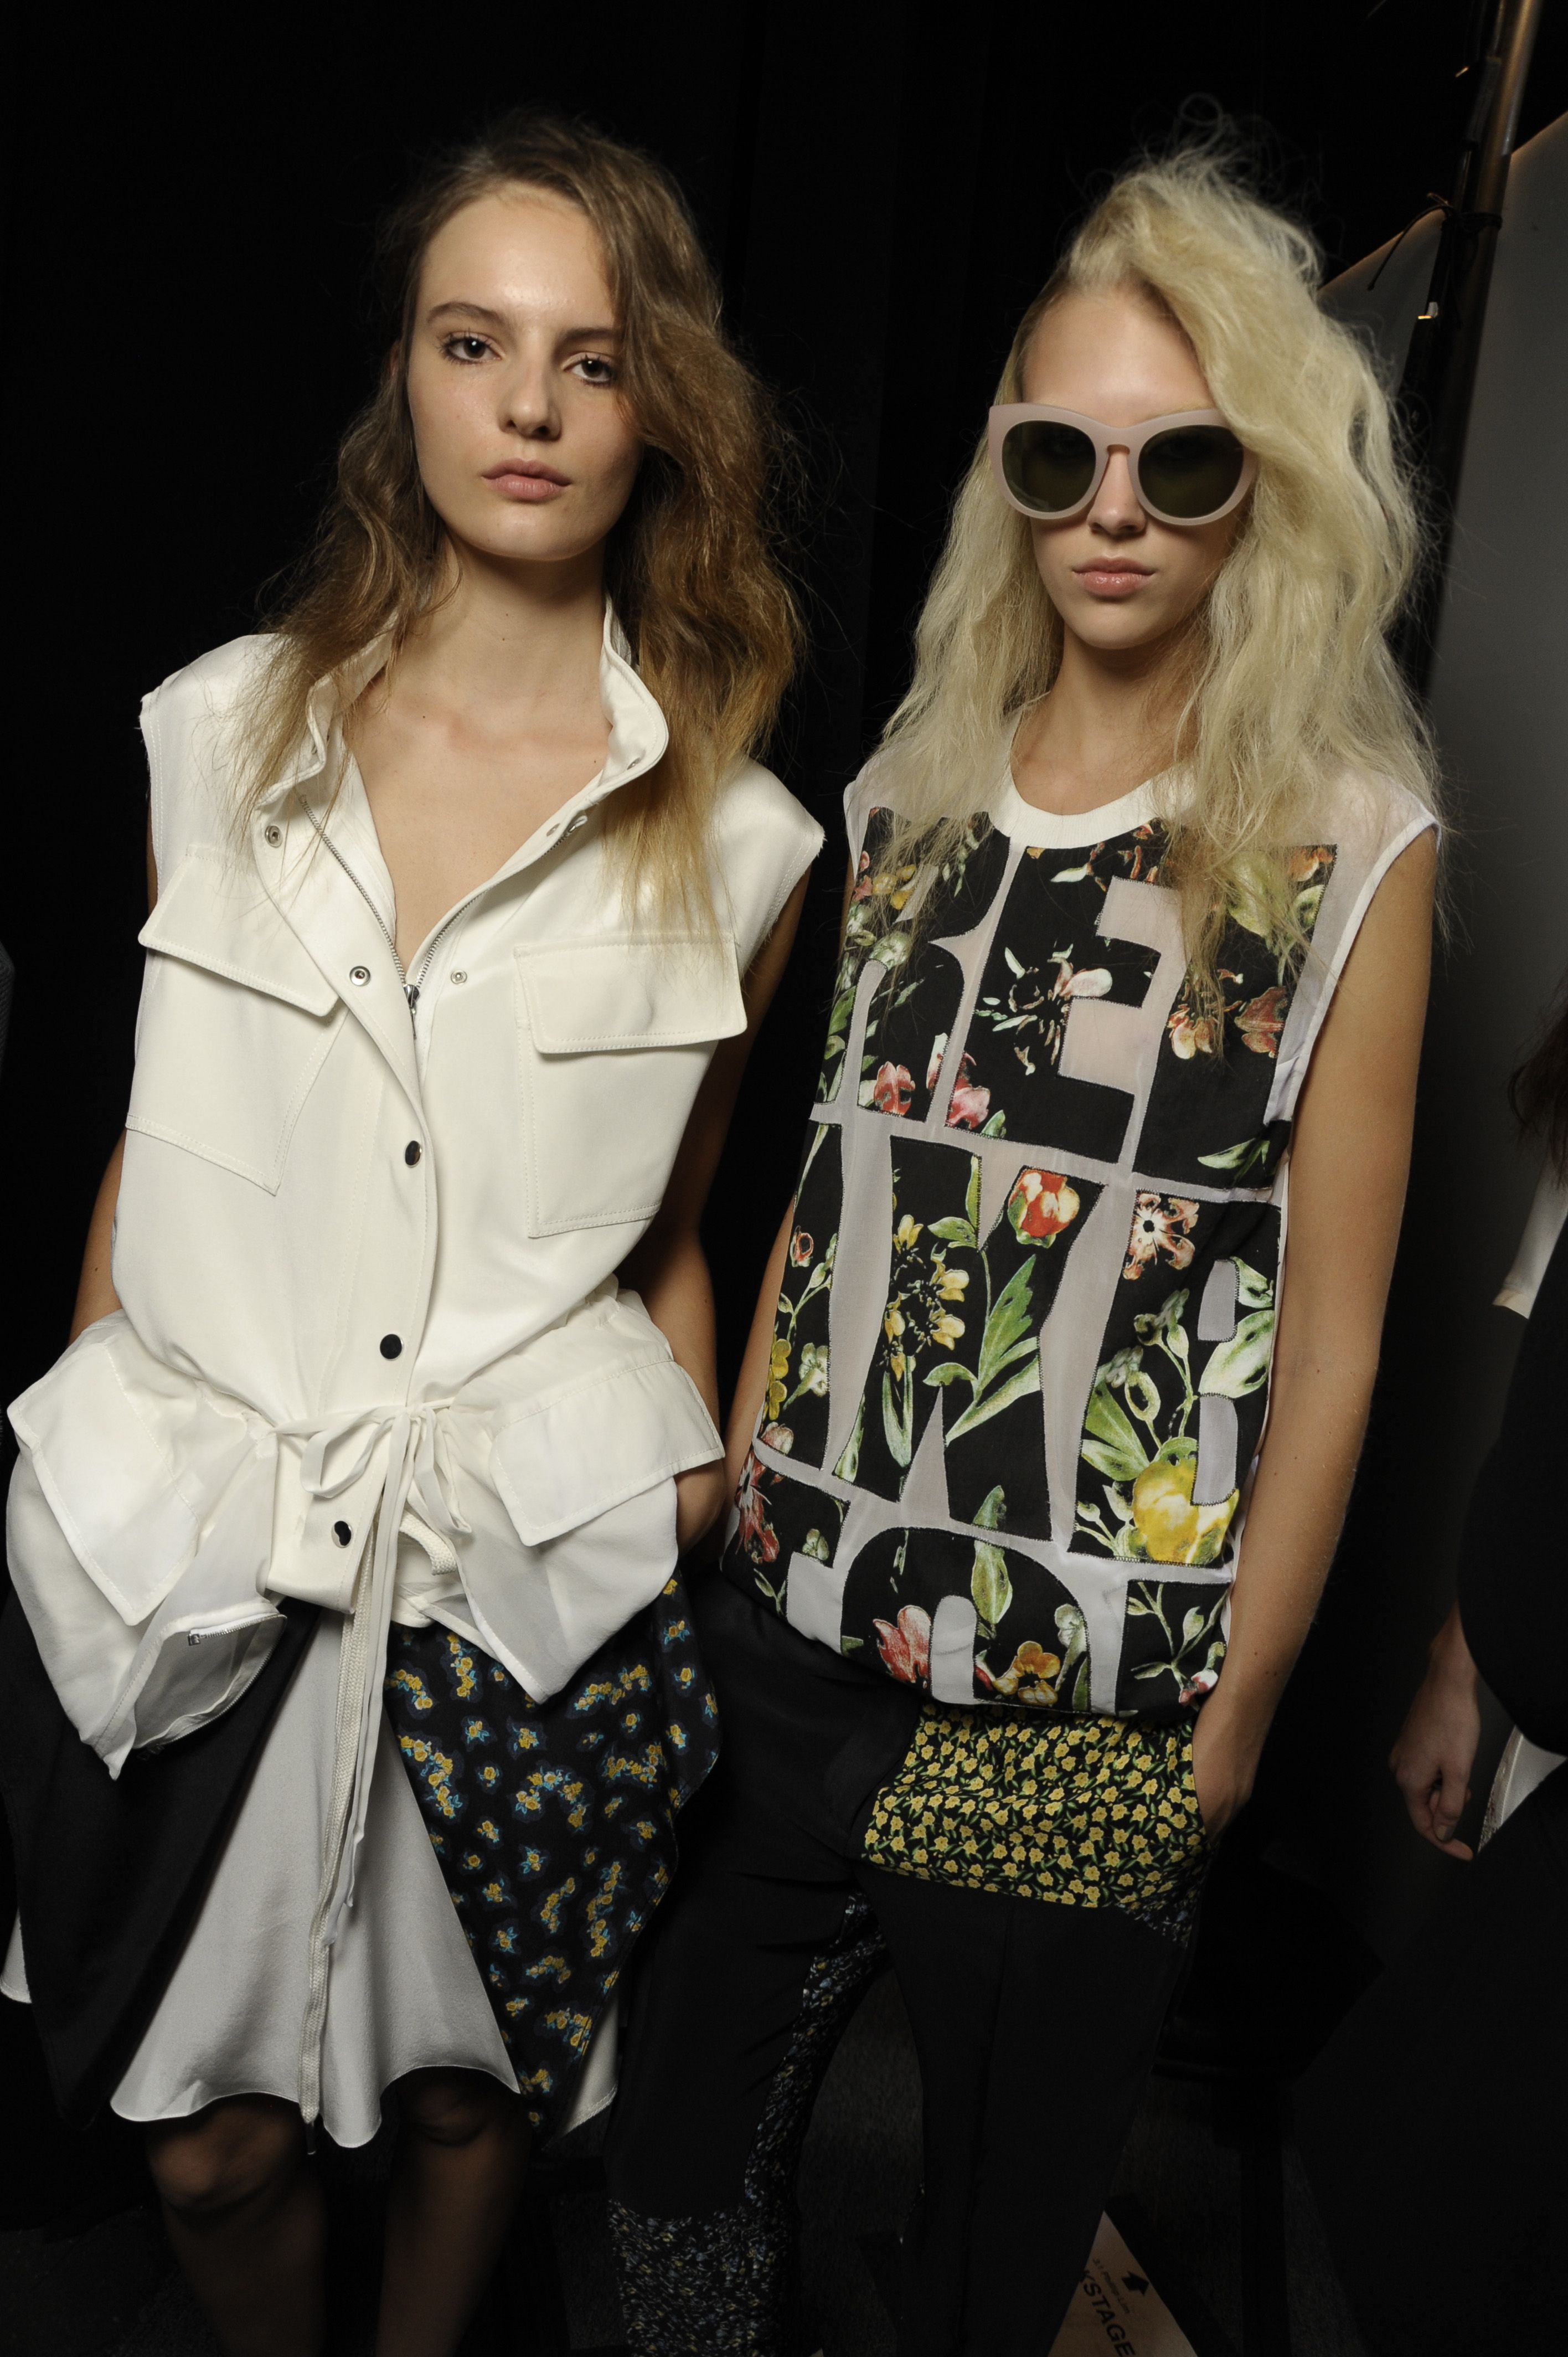 '90s-influenced style backstage at 3.1 Phillip Lim